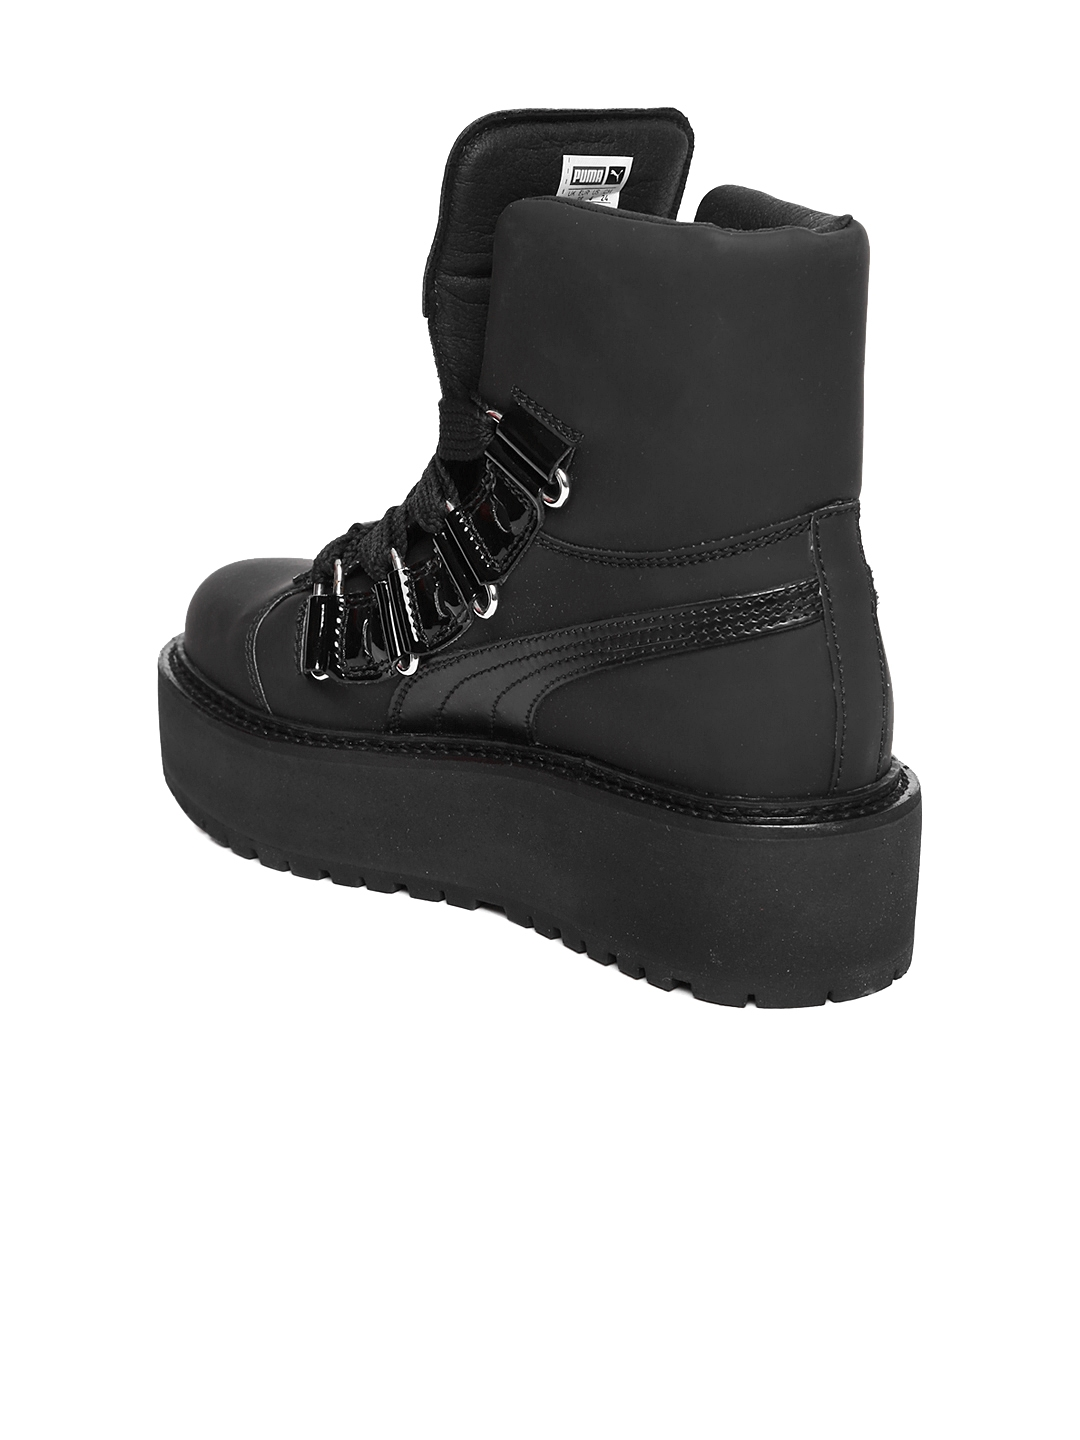 Buy Puma Unisex Black Flat Boots - Casual Shoes for Unisex 2268770 ... cd66f6fee52